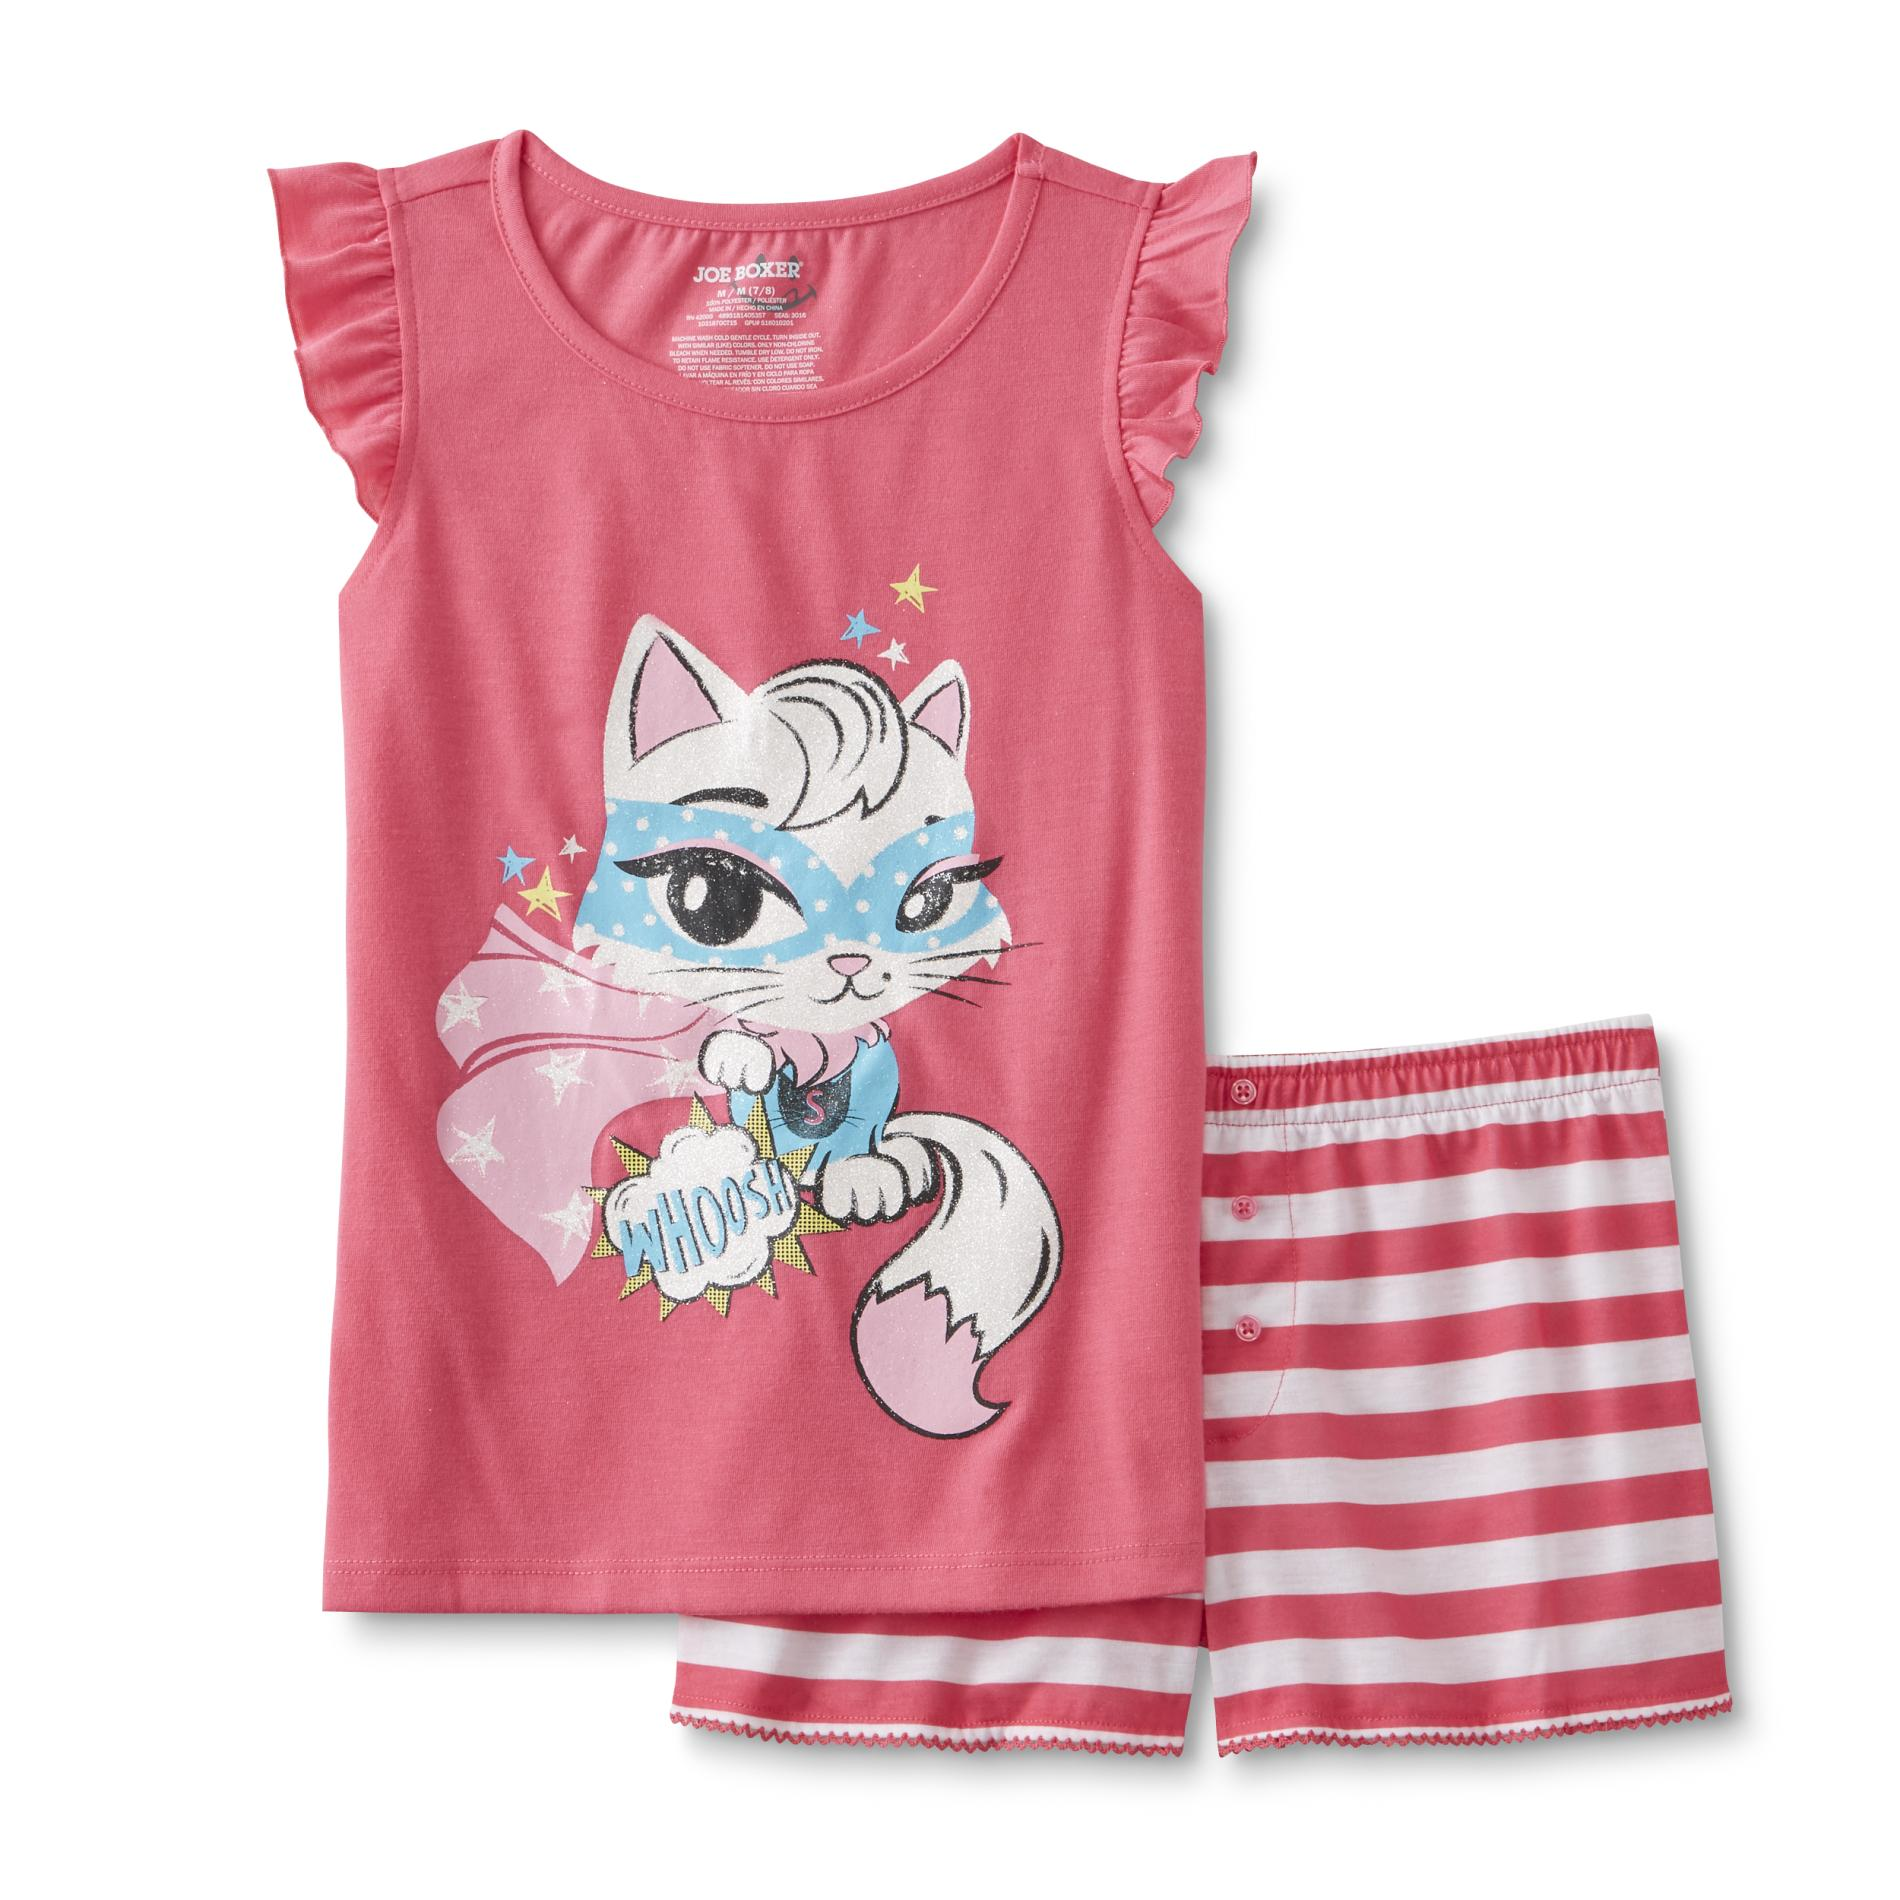 Joe Boxer Girl's Pajama Top & Shorts - Cat